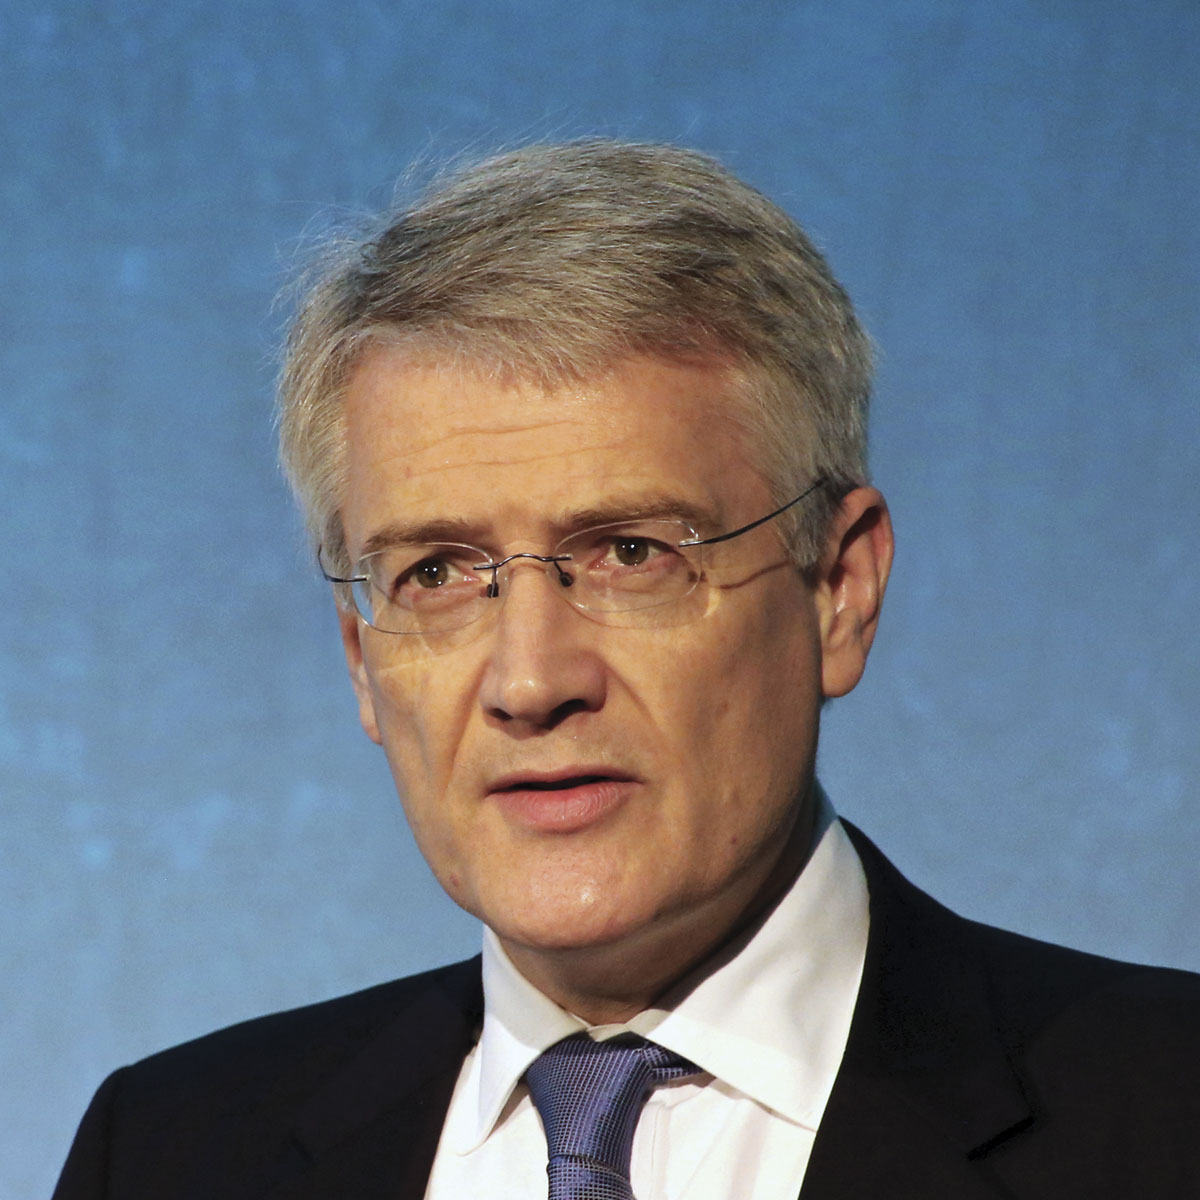 Andrew Jones, MP